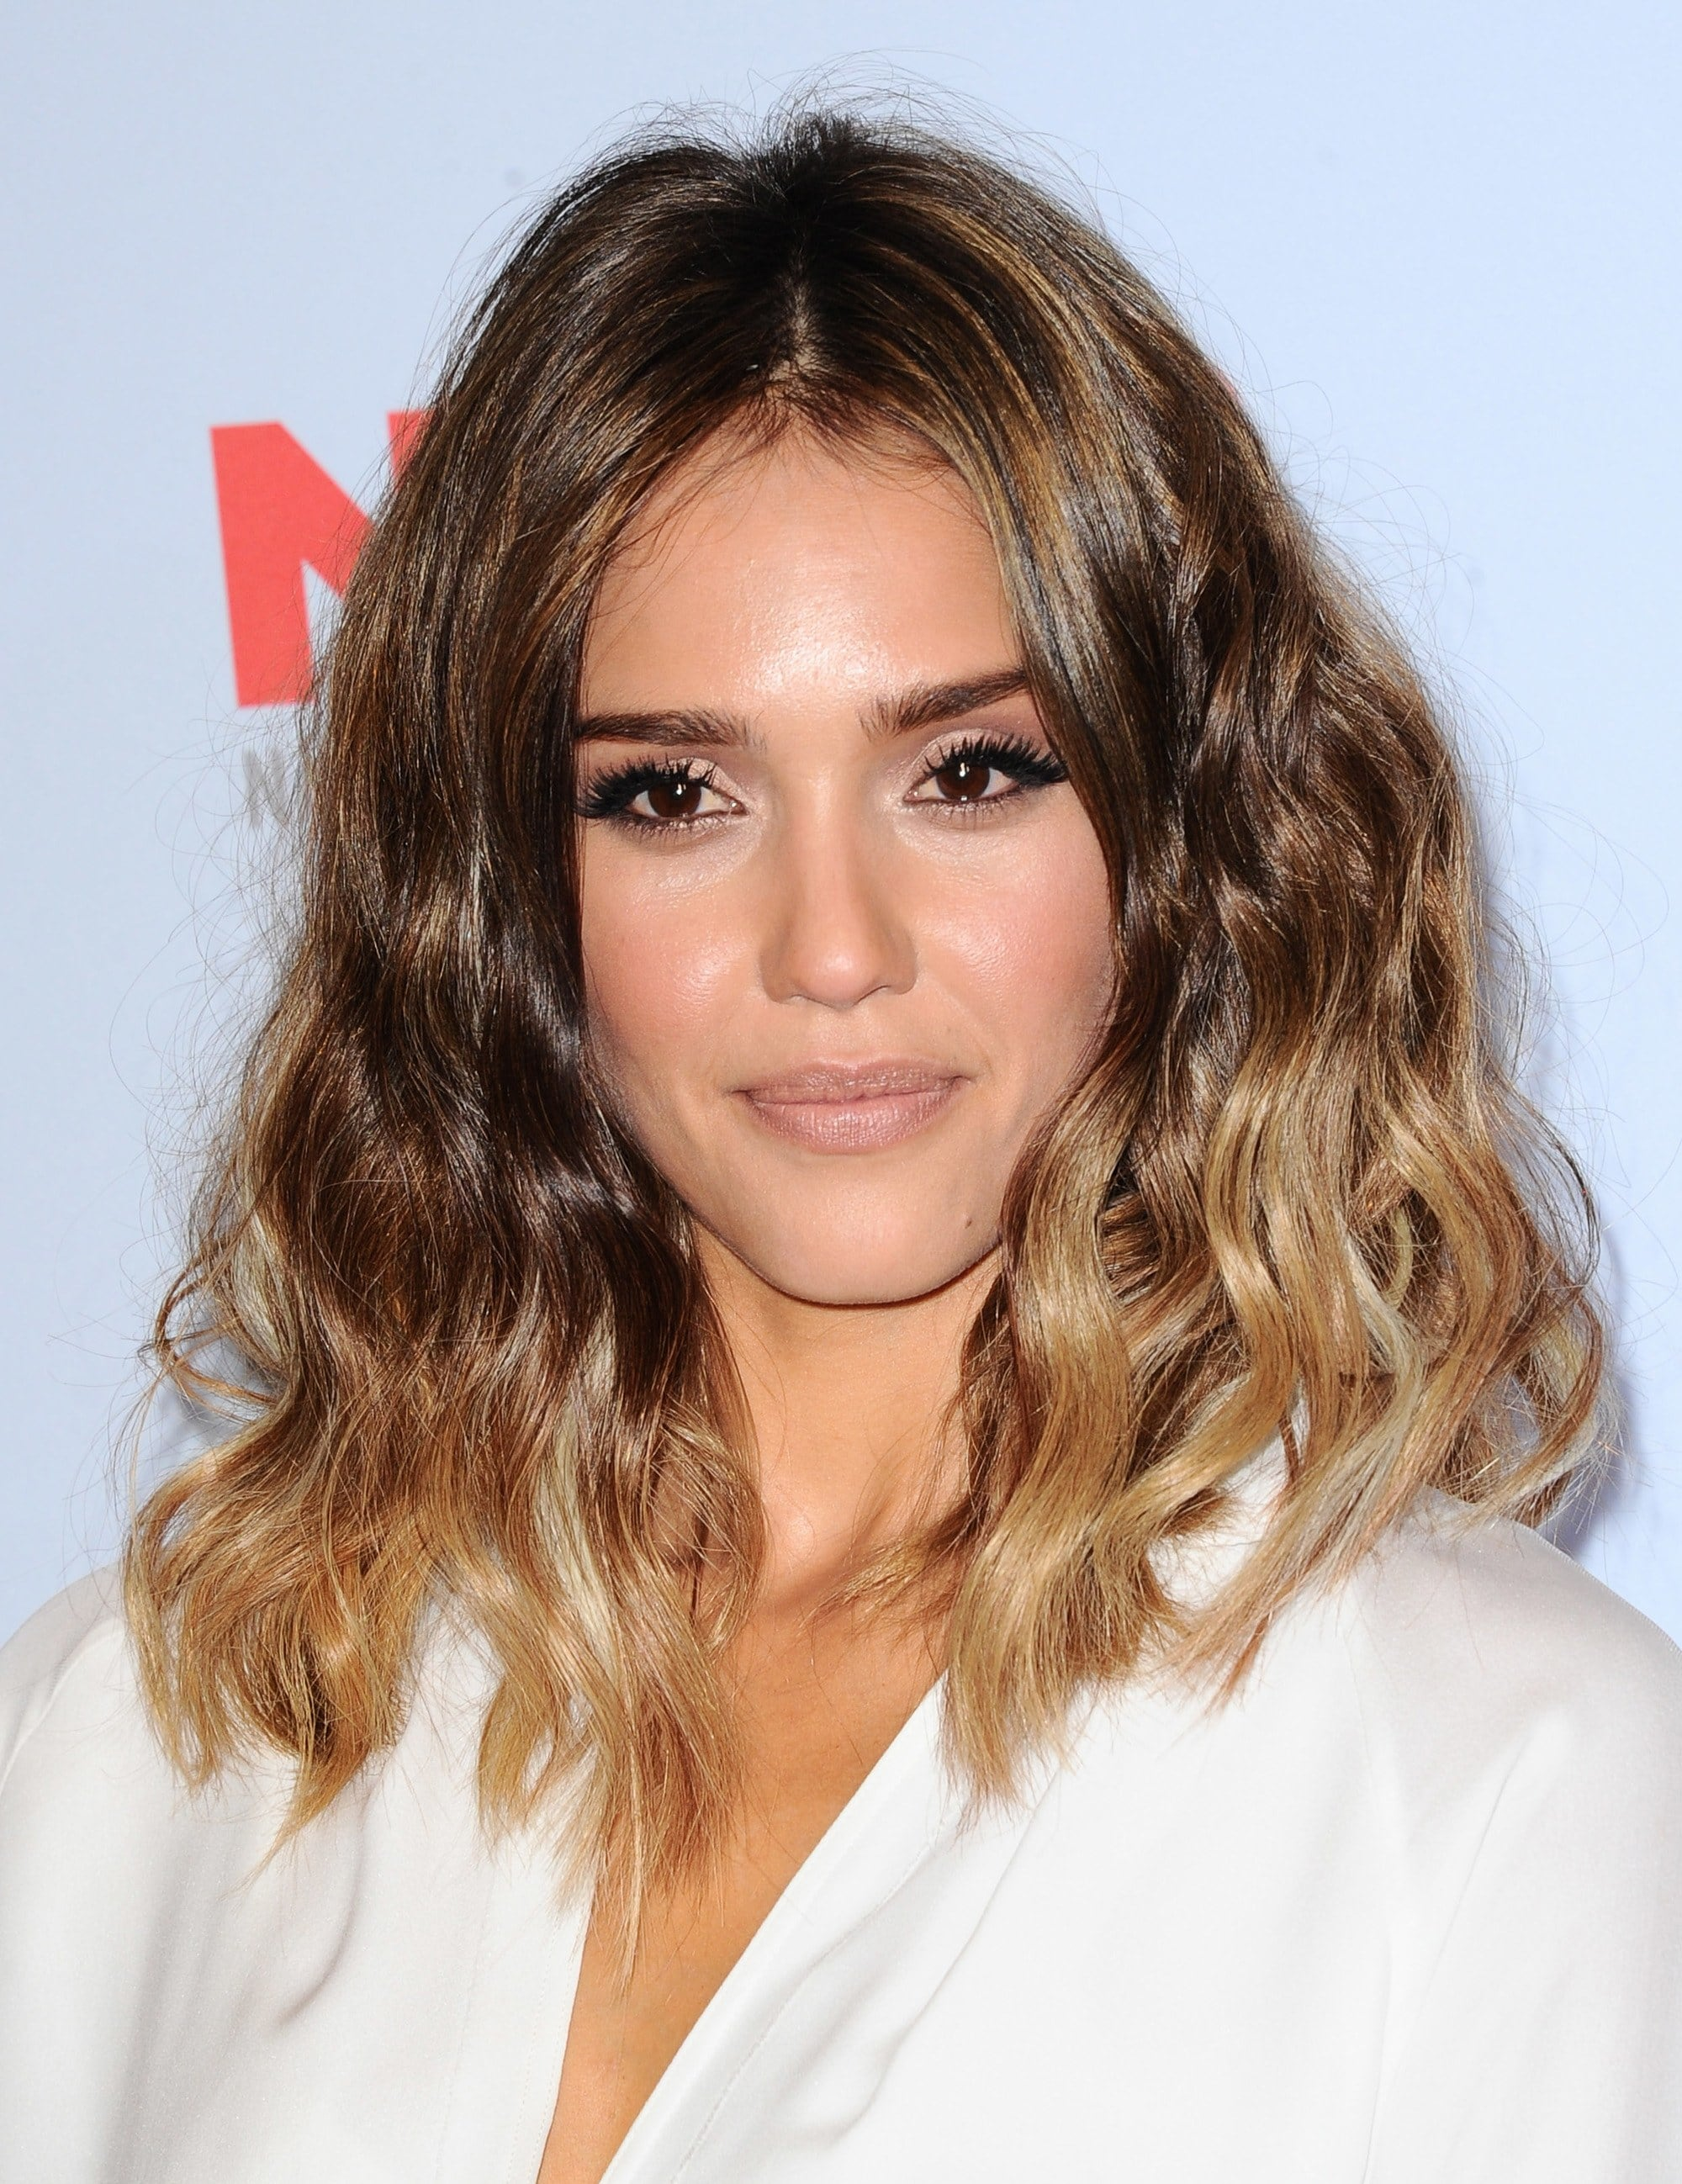 Medium hairstyles for thick hair: Jessica Alba with wavy mid-length brunette ombre hair